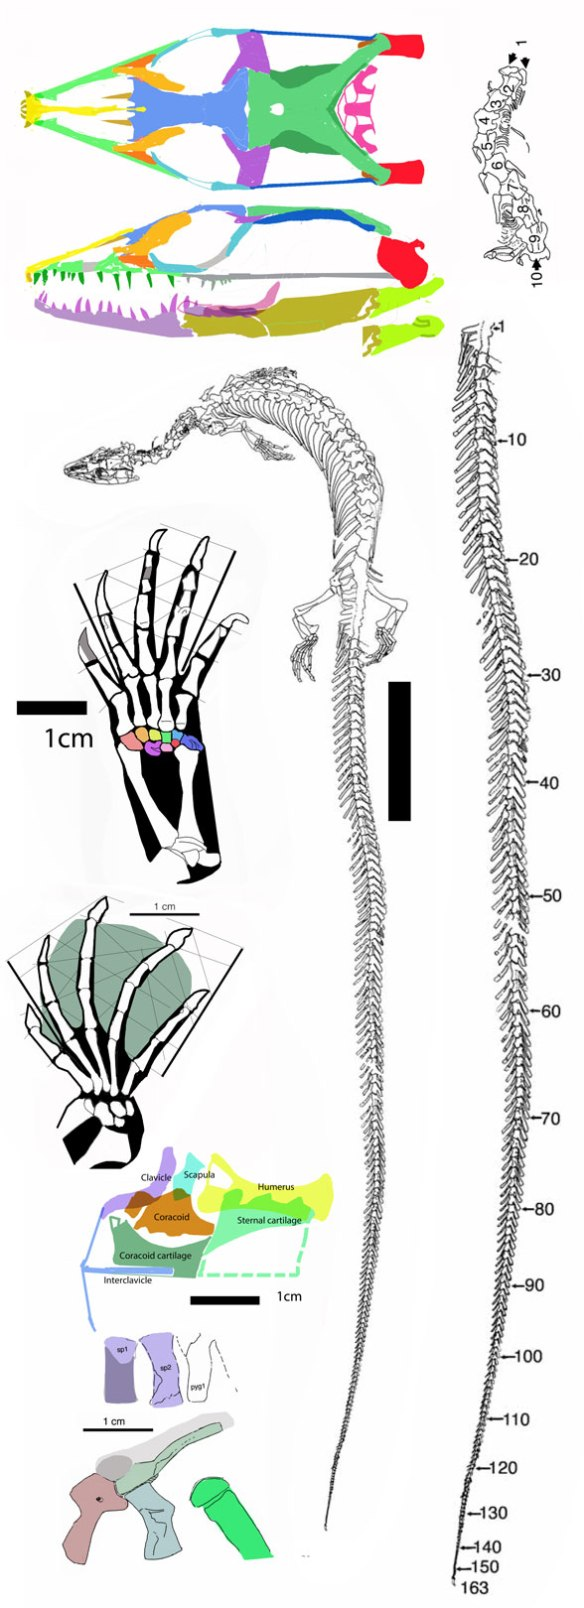 Figure 2. Pontosaurus and its parts. Data from Caldwell 2006. This is one of the last taxa we know in the snake lineage that still had a pectoral girdle.